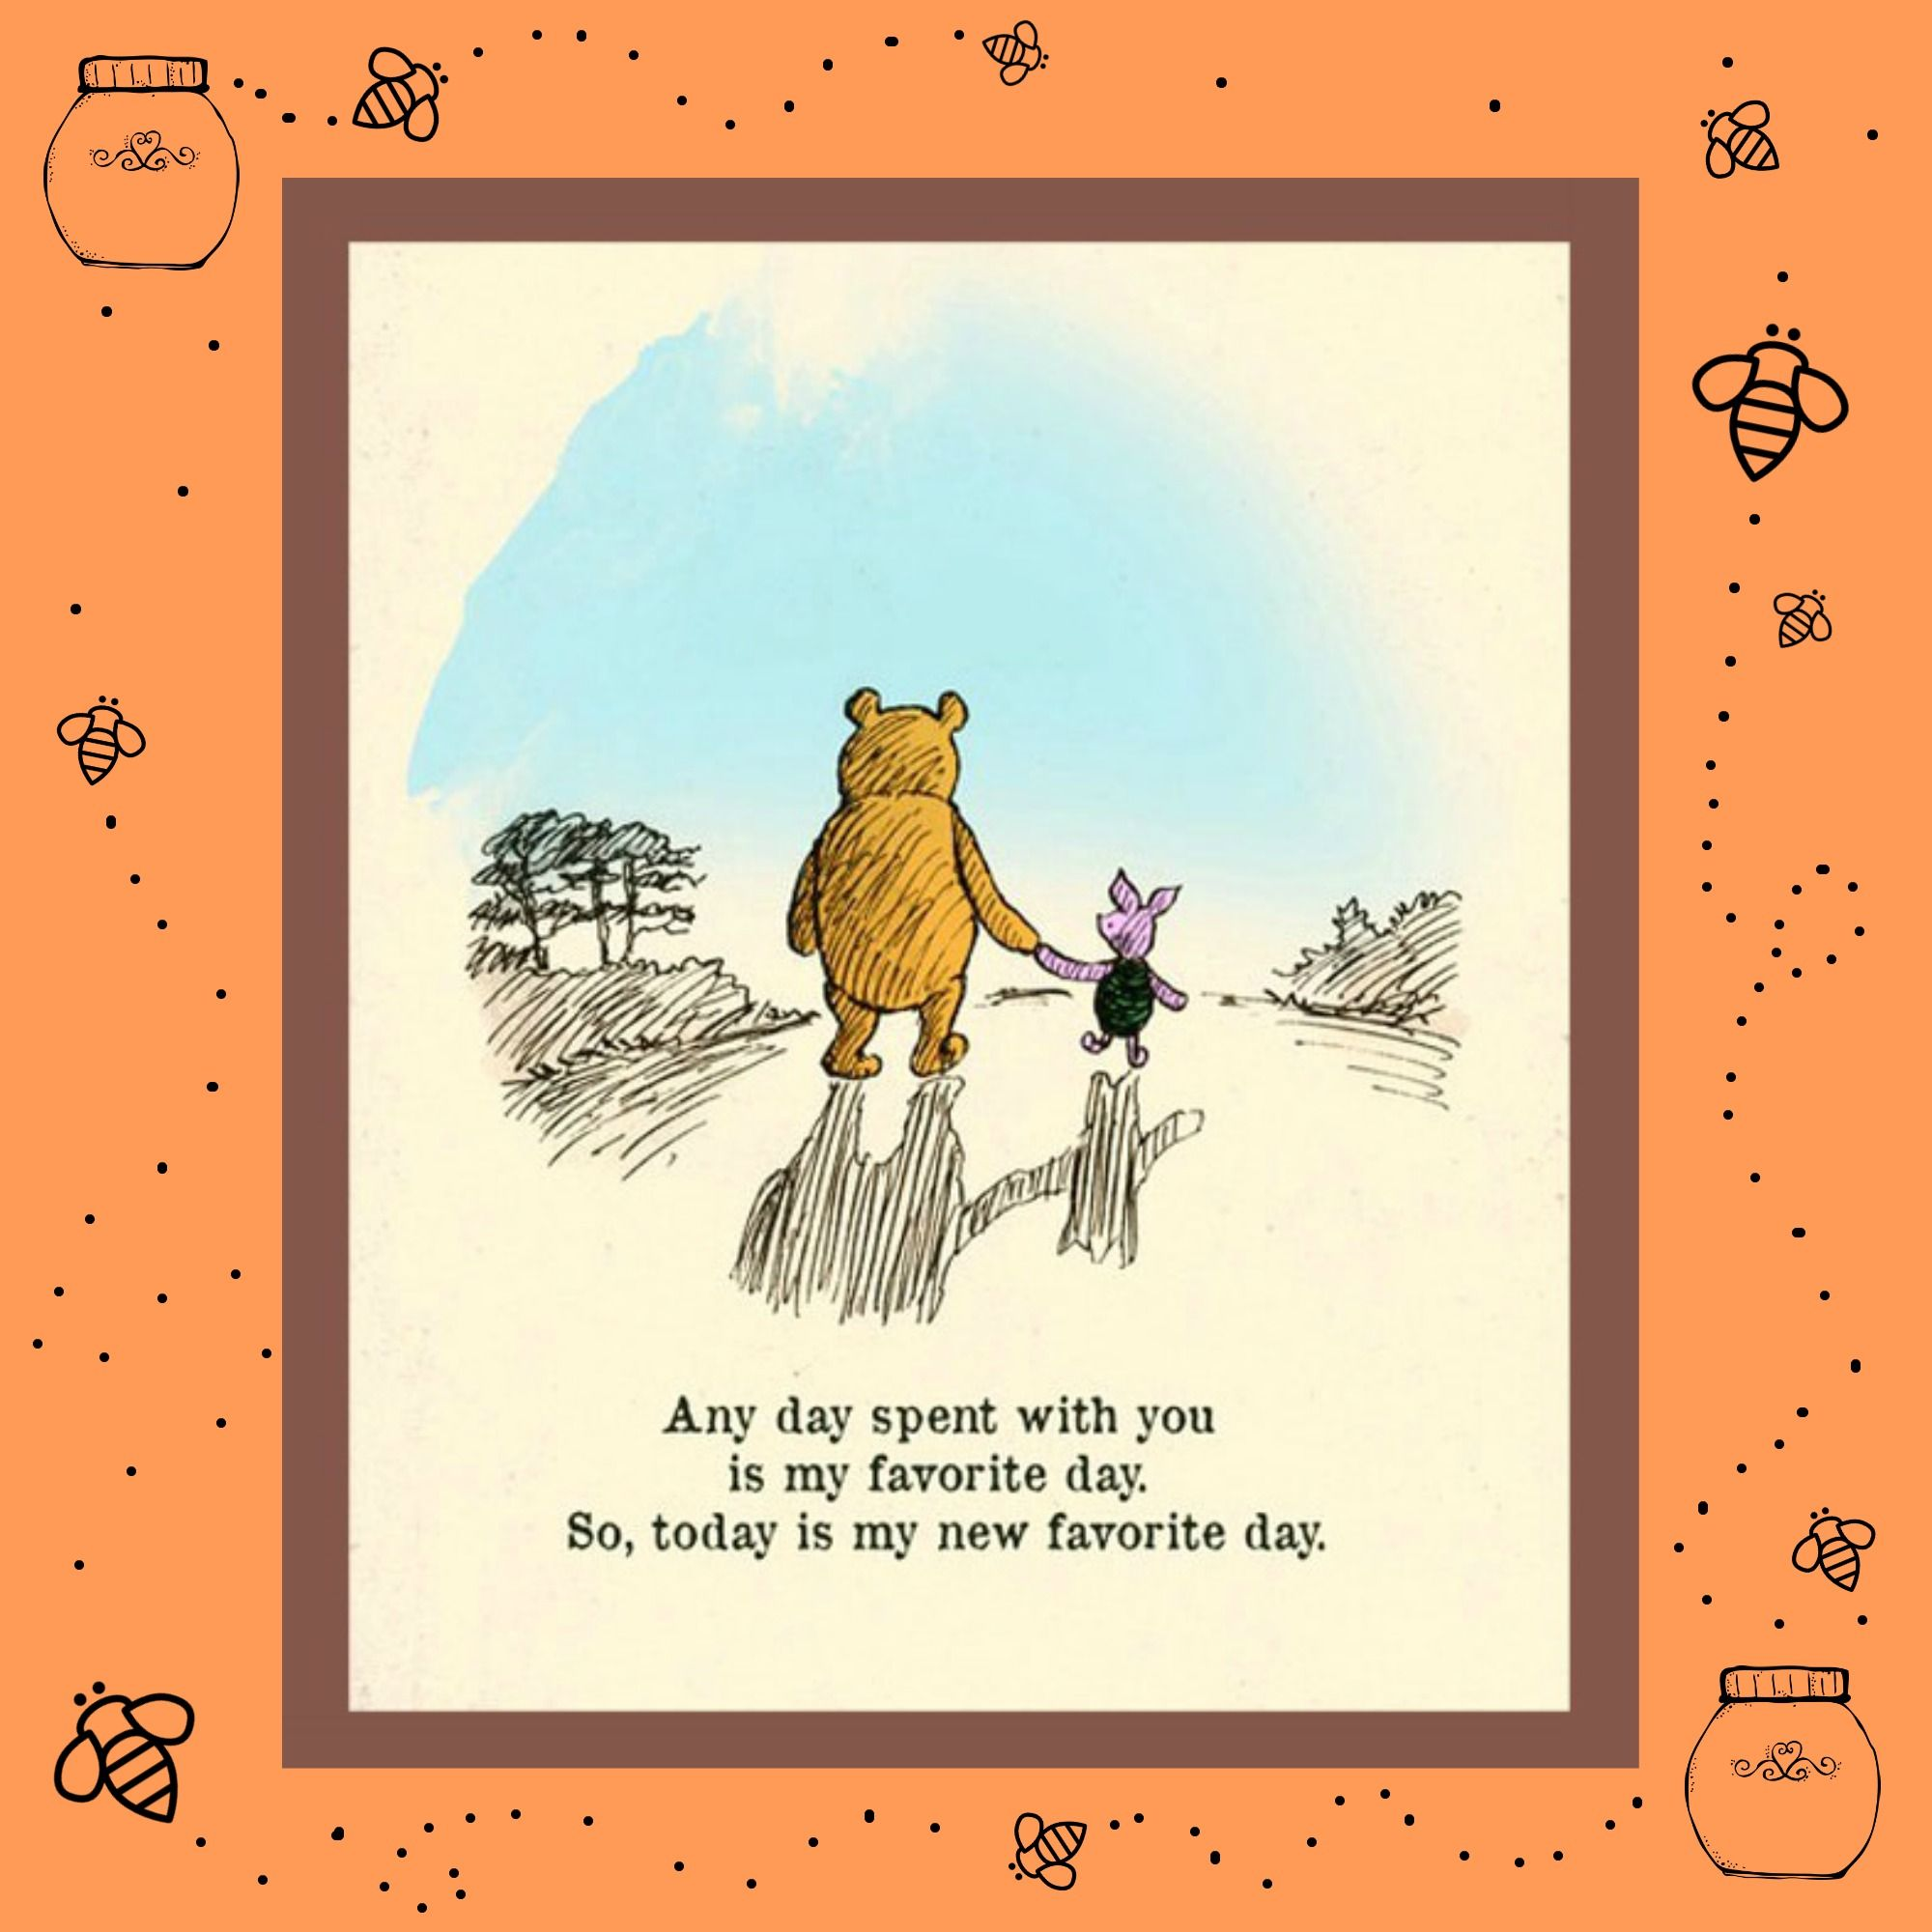 Piglet And Winnie The Pooh Quotes: Pooh Bear Walking With Piglets - Google Zoeken